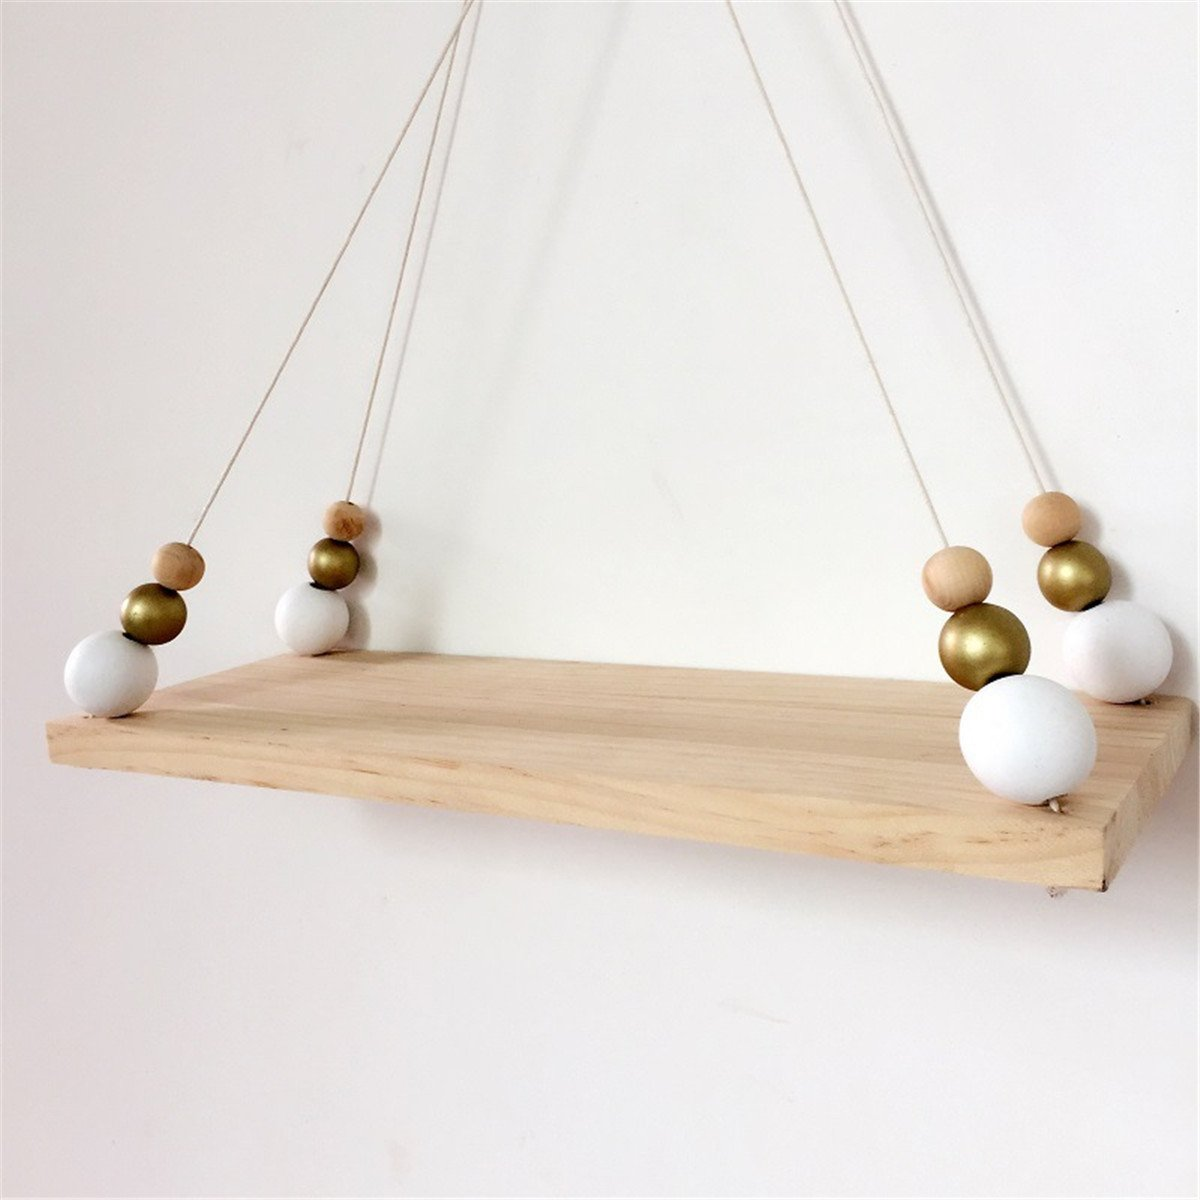 Jeteven Wood Wall Hanging Shelf Swing Shelves Wooden Board Shelf with Rope for Room Wall Decor White Gold 40x15x1.5cm